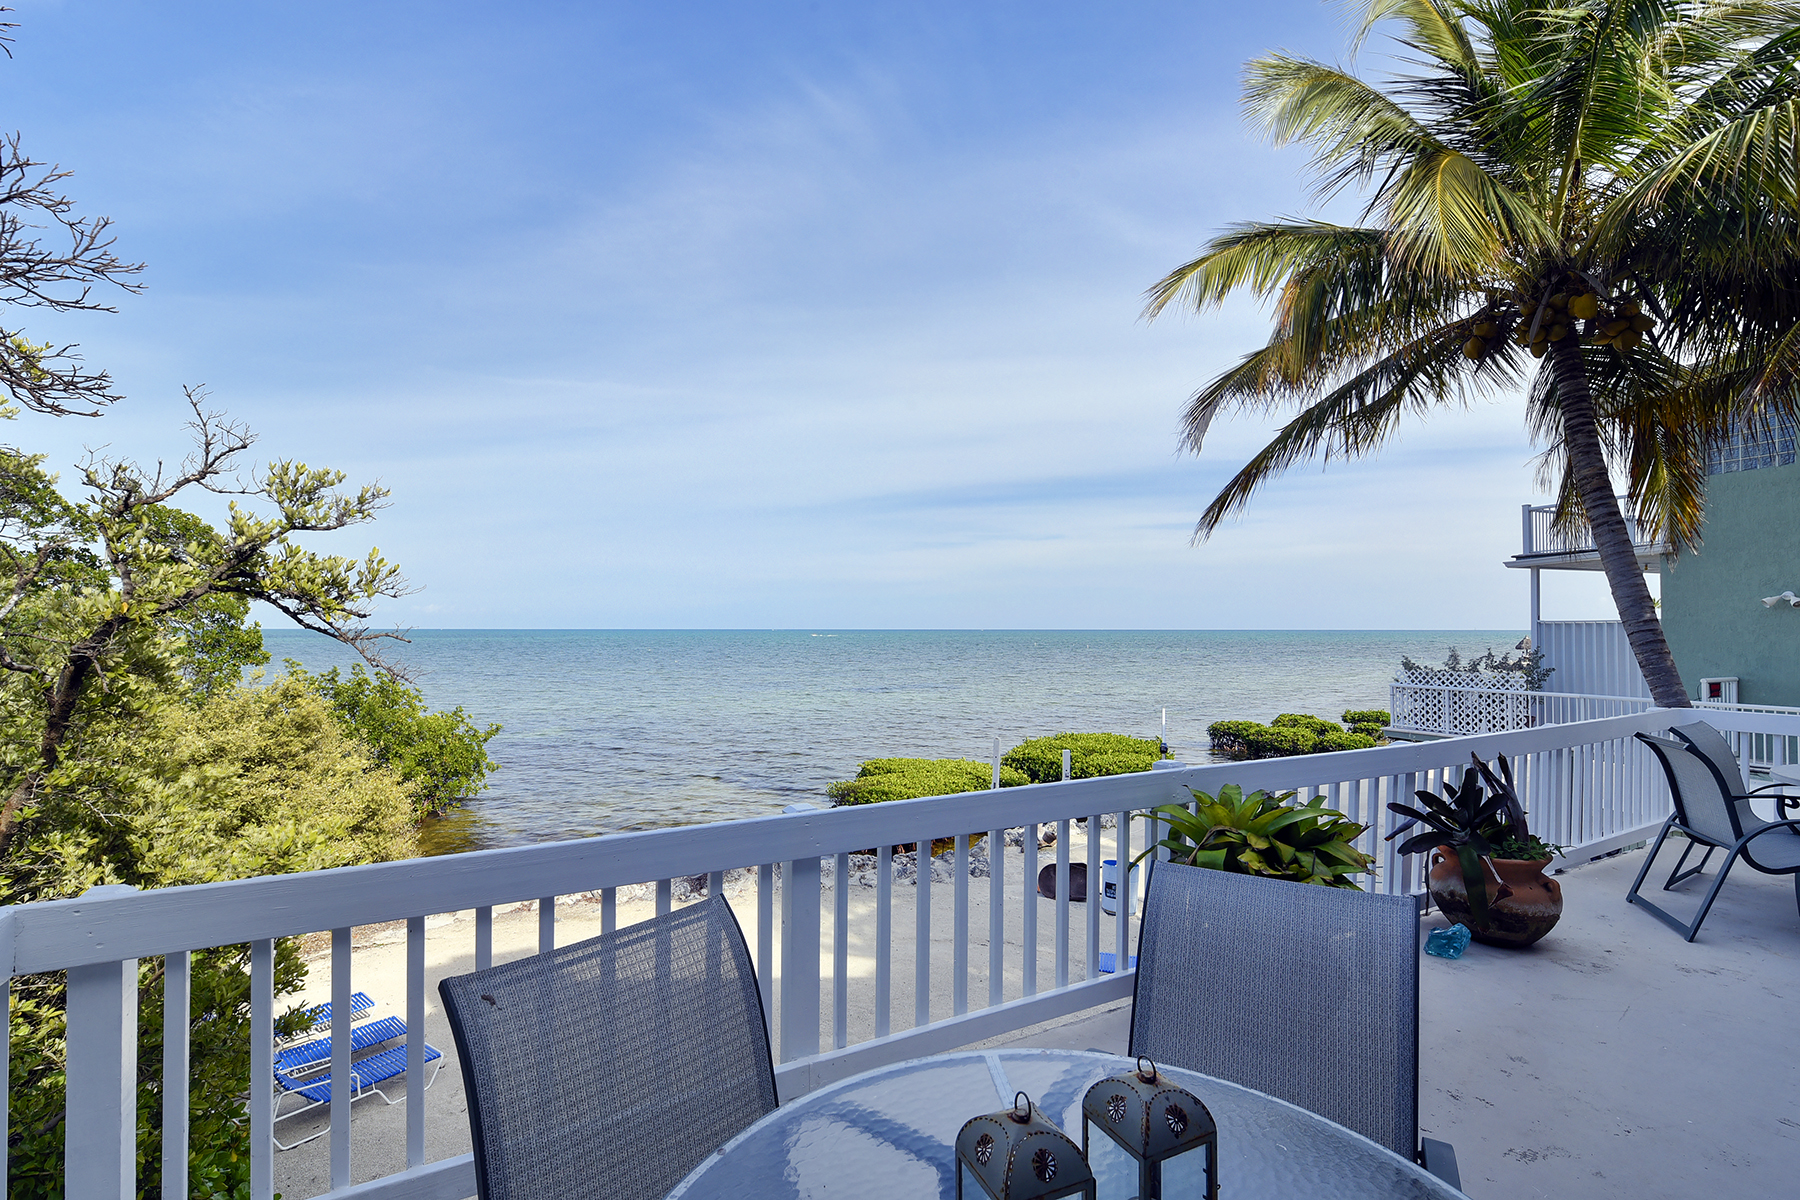 Moradia para Venda às Sweeping Ocean Views 316 North Drive Plantation Key, Florida, 33036 Estados Unidos